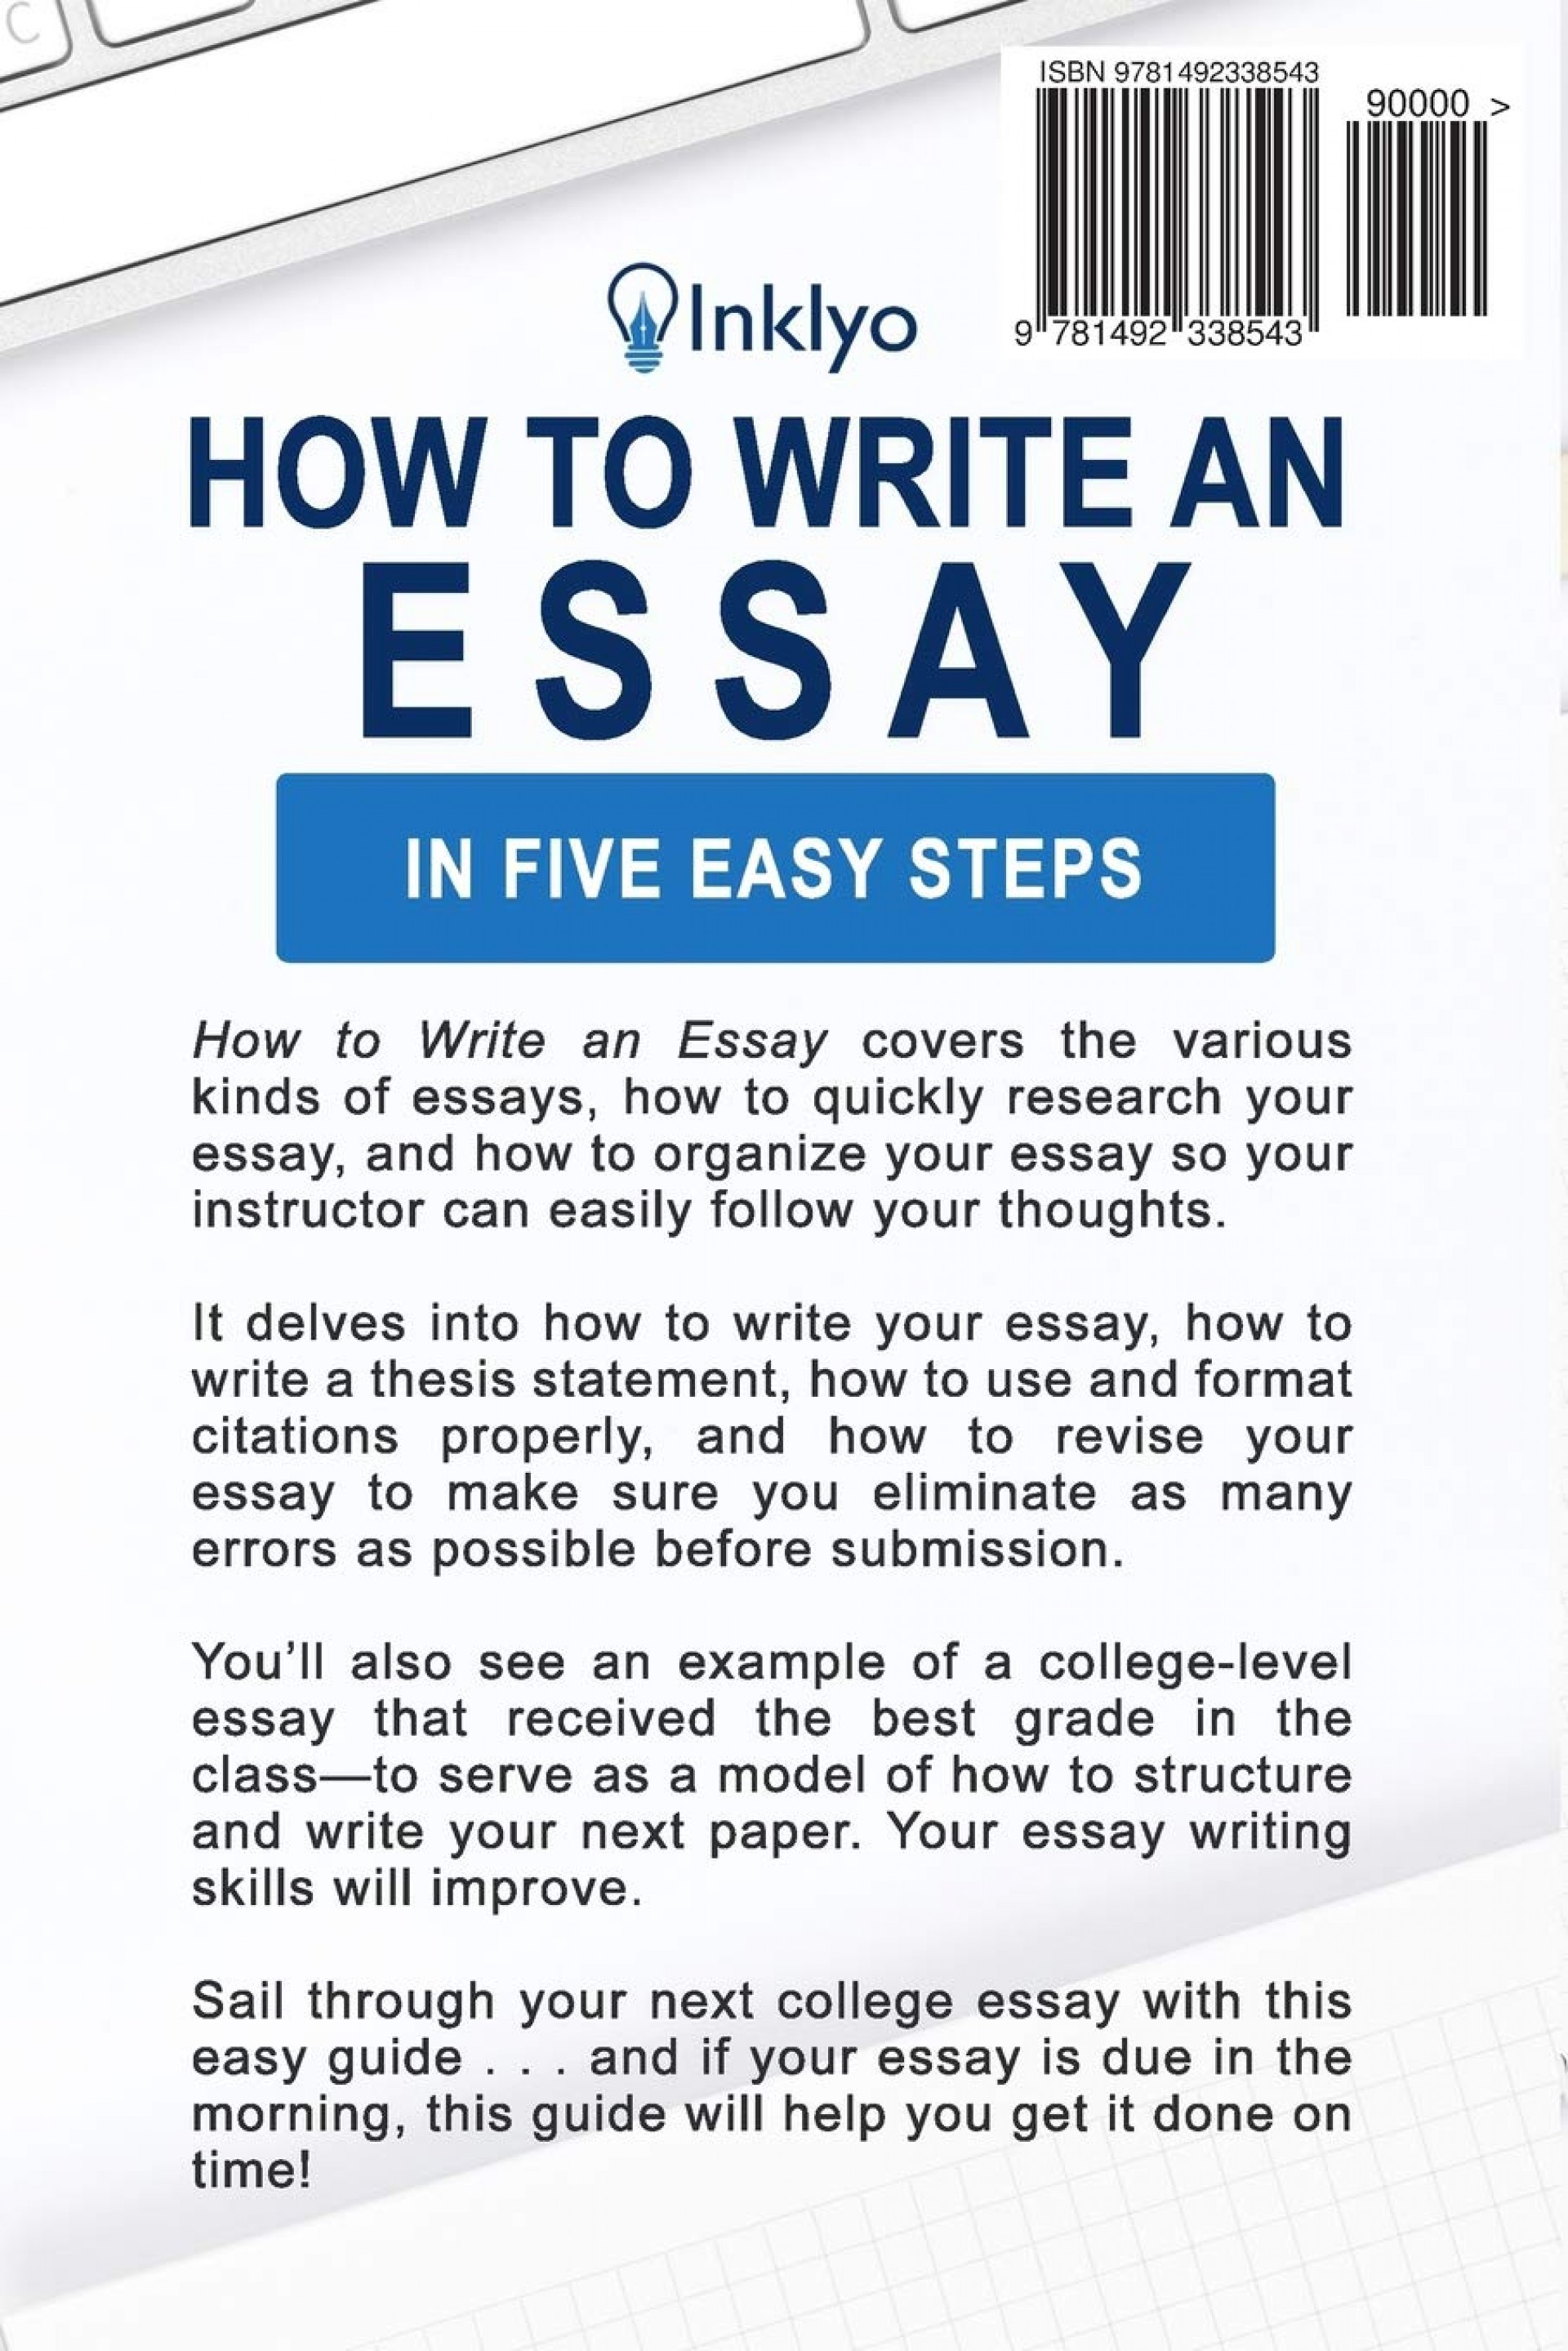 007 How To Make An Essay 71v7ckw5pll Unusual Self Introduction The Best In Longer With Periods 1920